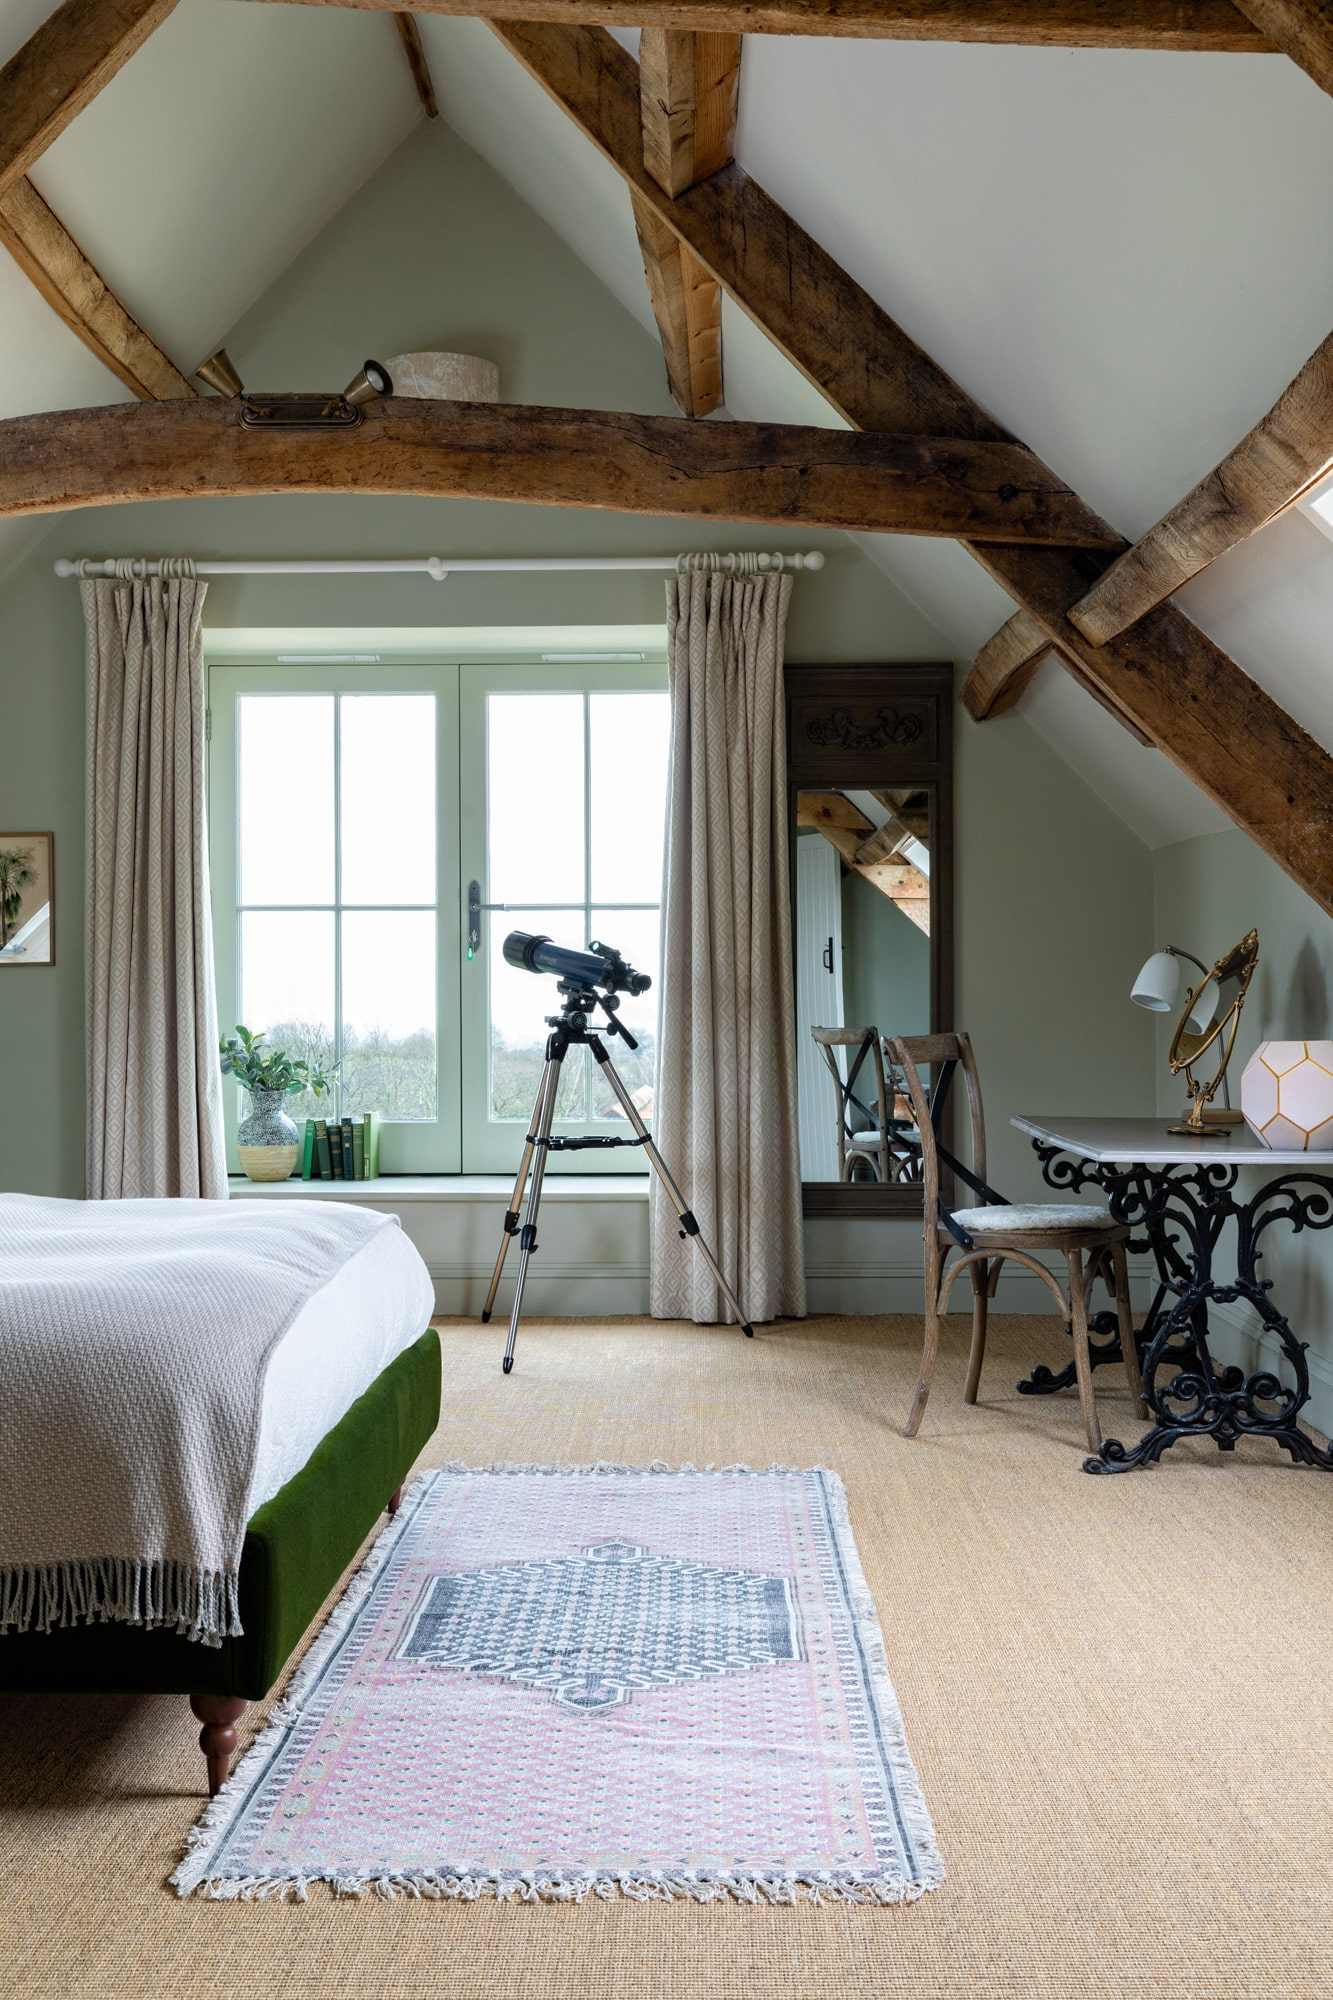 Interior photo of a barn bedroom: olive green walls; telescope, edge of the bed; a desk with lamp and chair